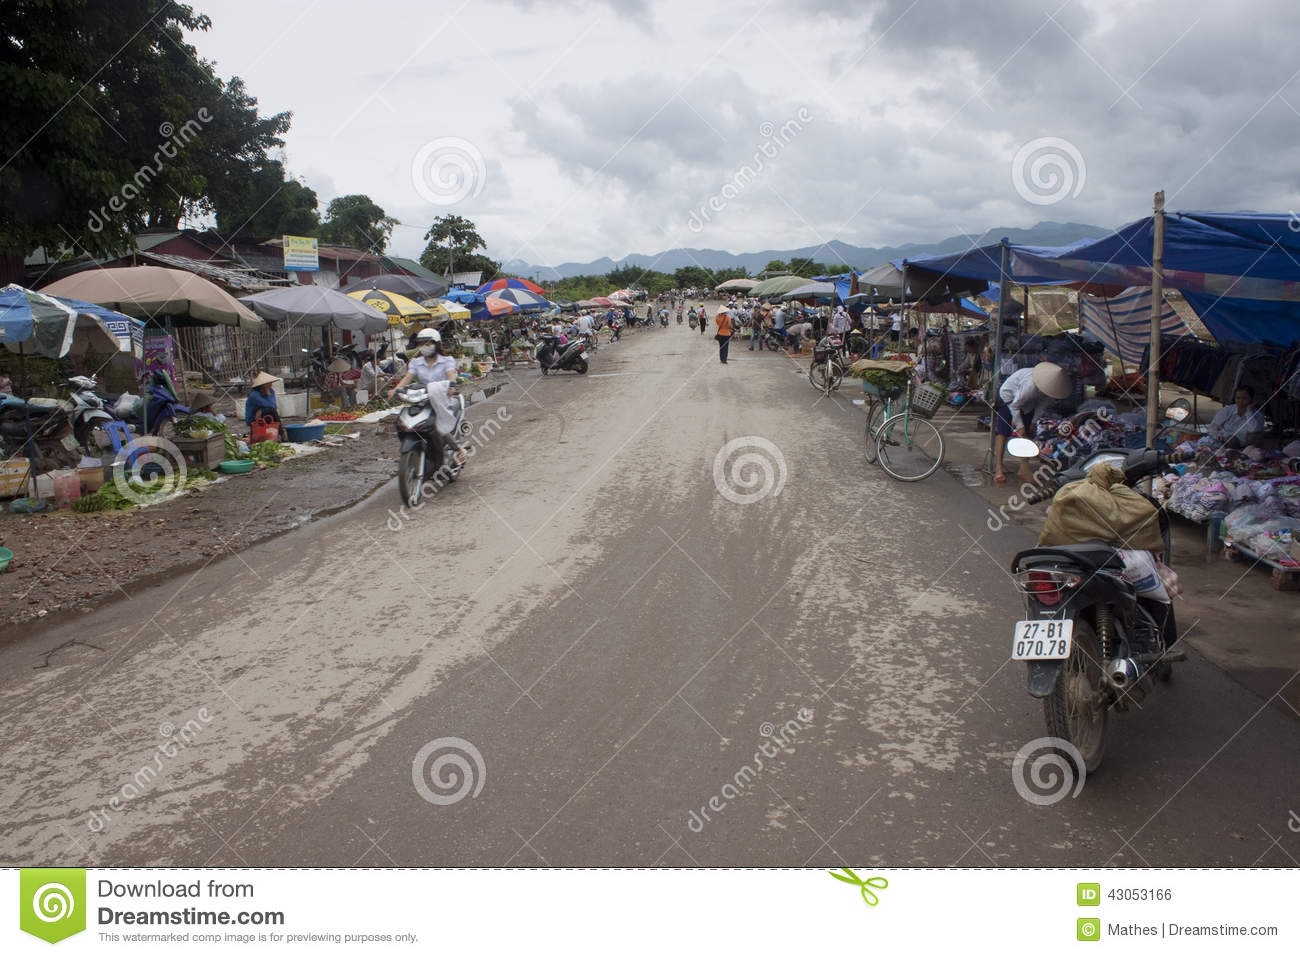 supermarkets for poor people in vietnam • lack of supermarkets a 2009 study by the us department of agriculture found that 235 million people lack access to a supermarket within a mile of their home.